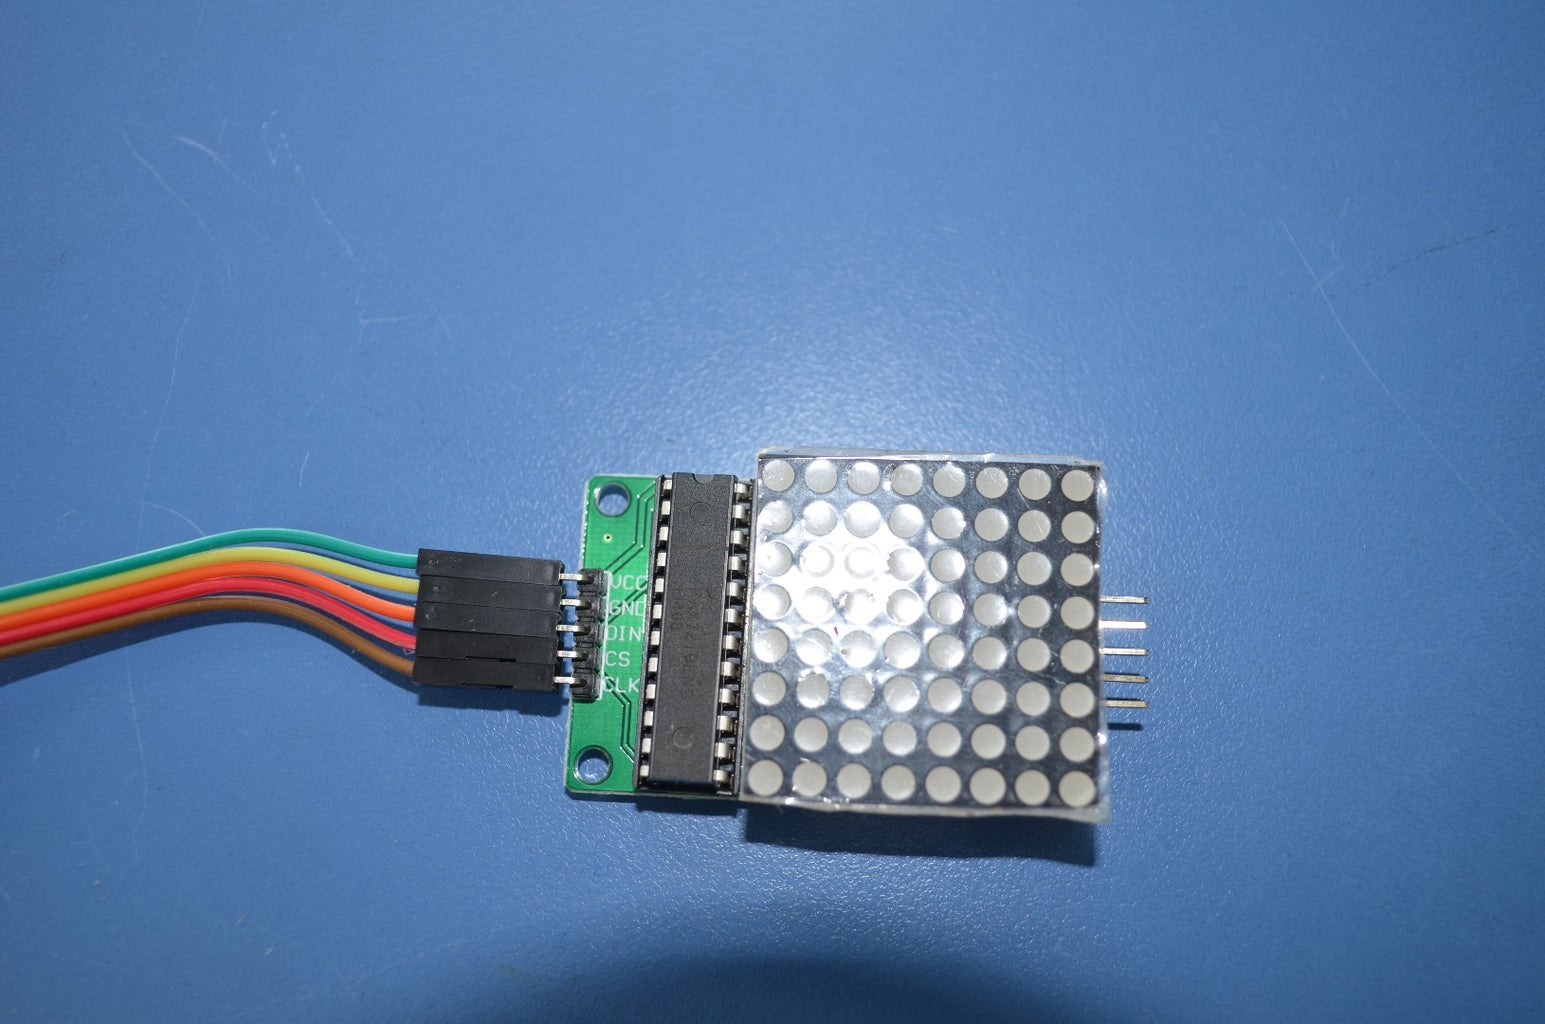 Wiring the LED